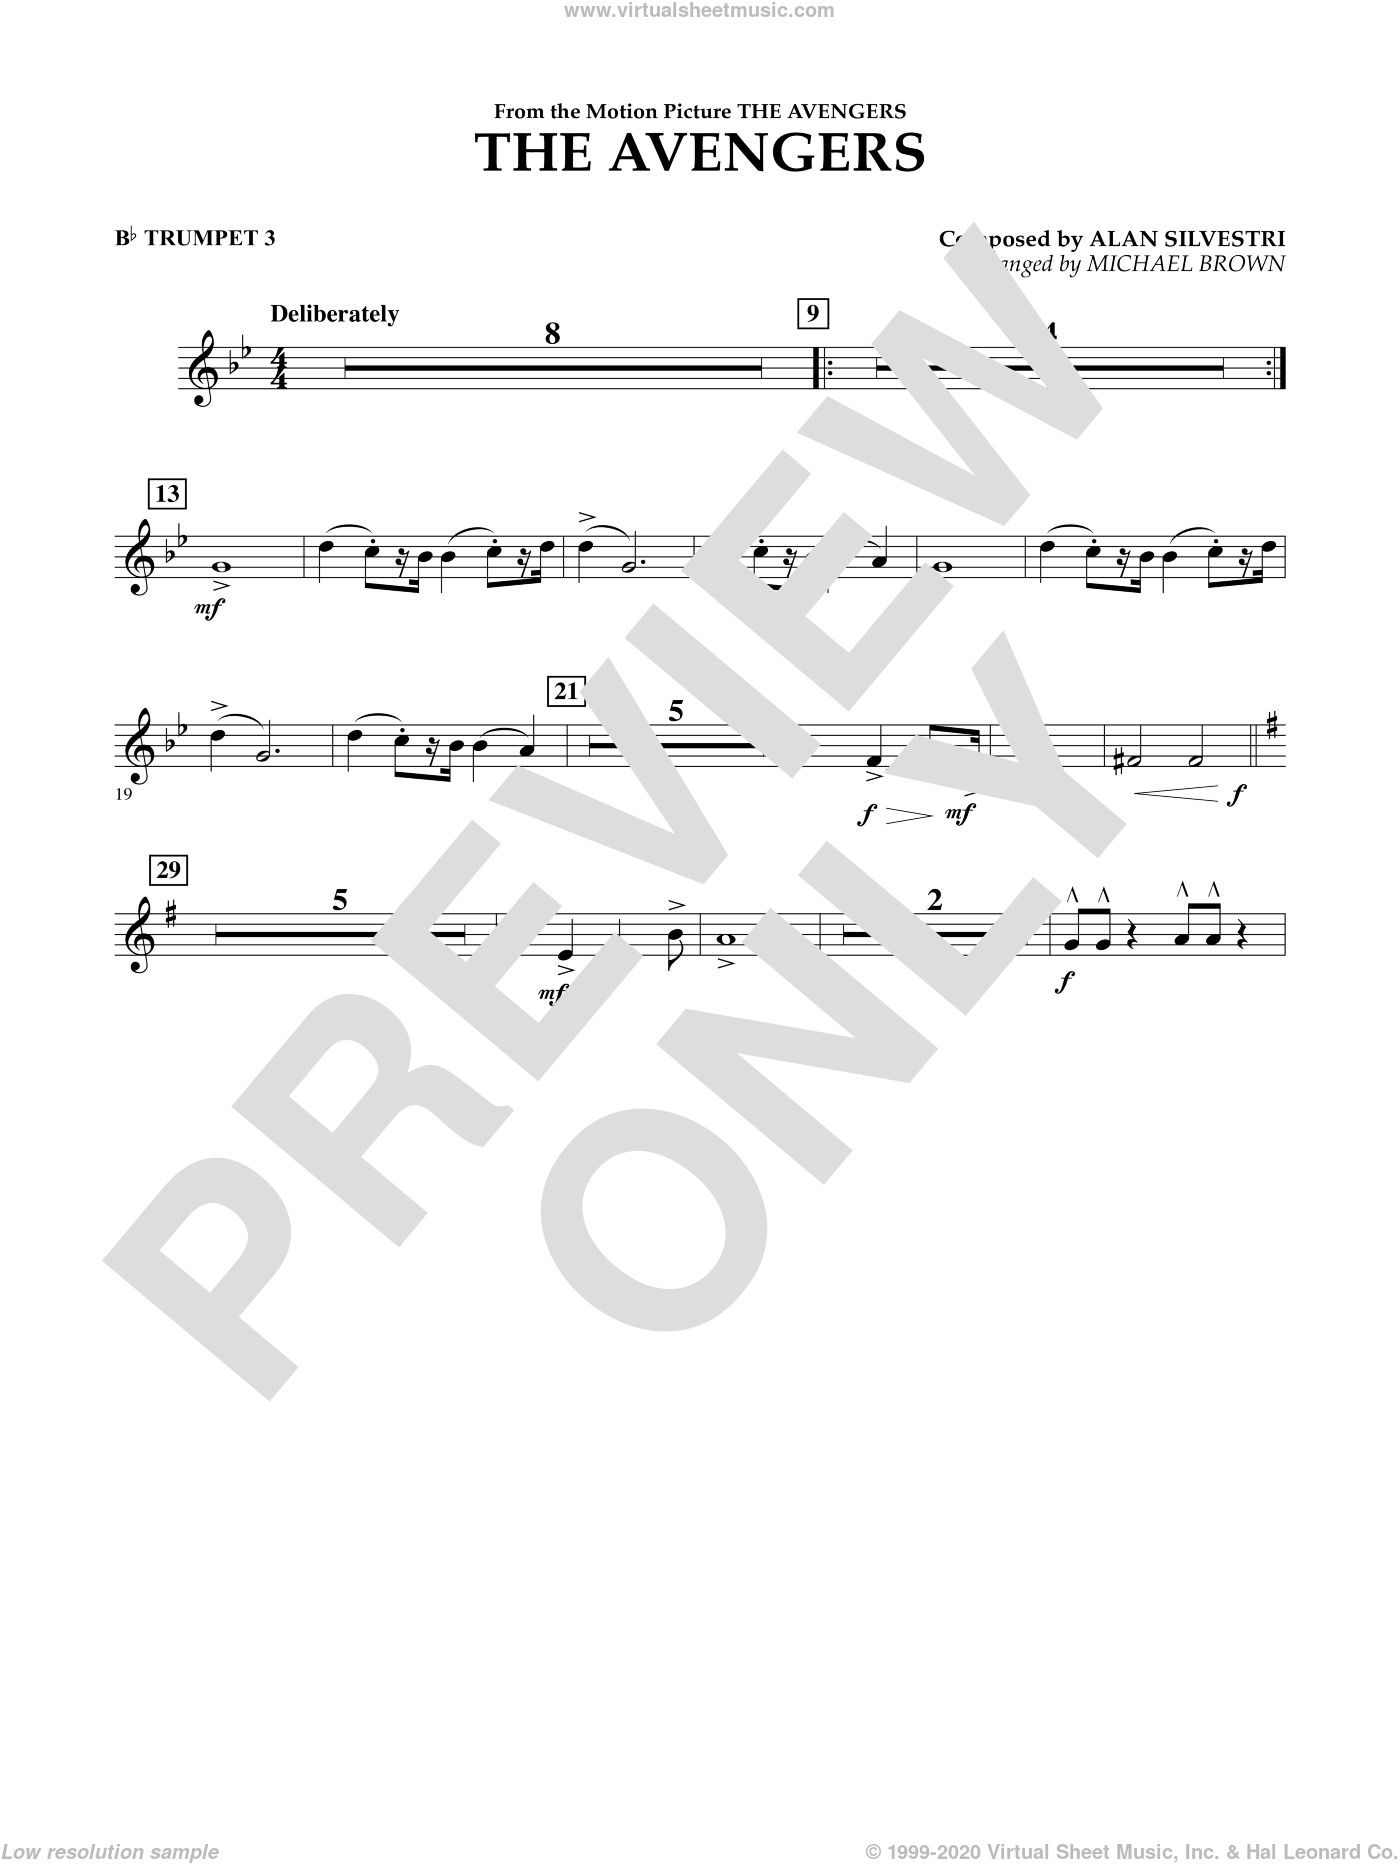 The Avengers sheet music for concert band (Bb trumpet 3) by Michael Brown